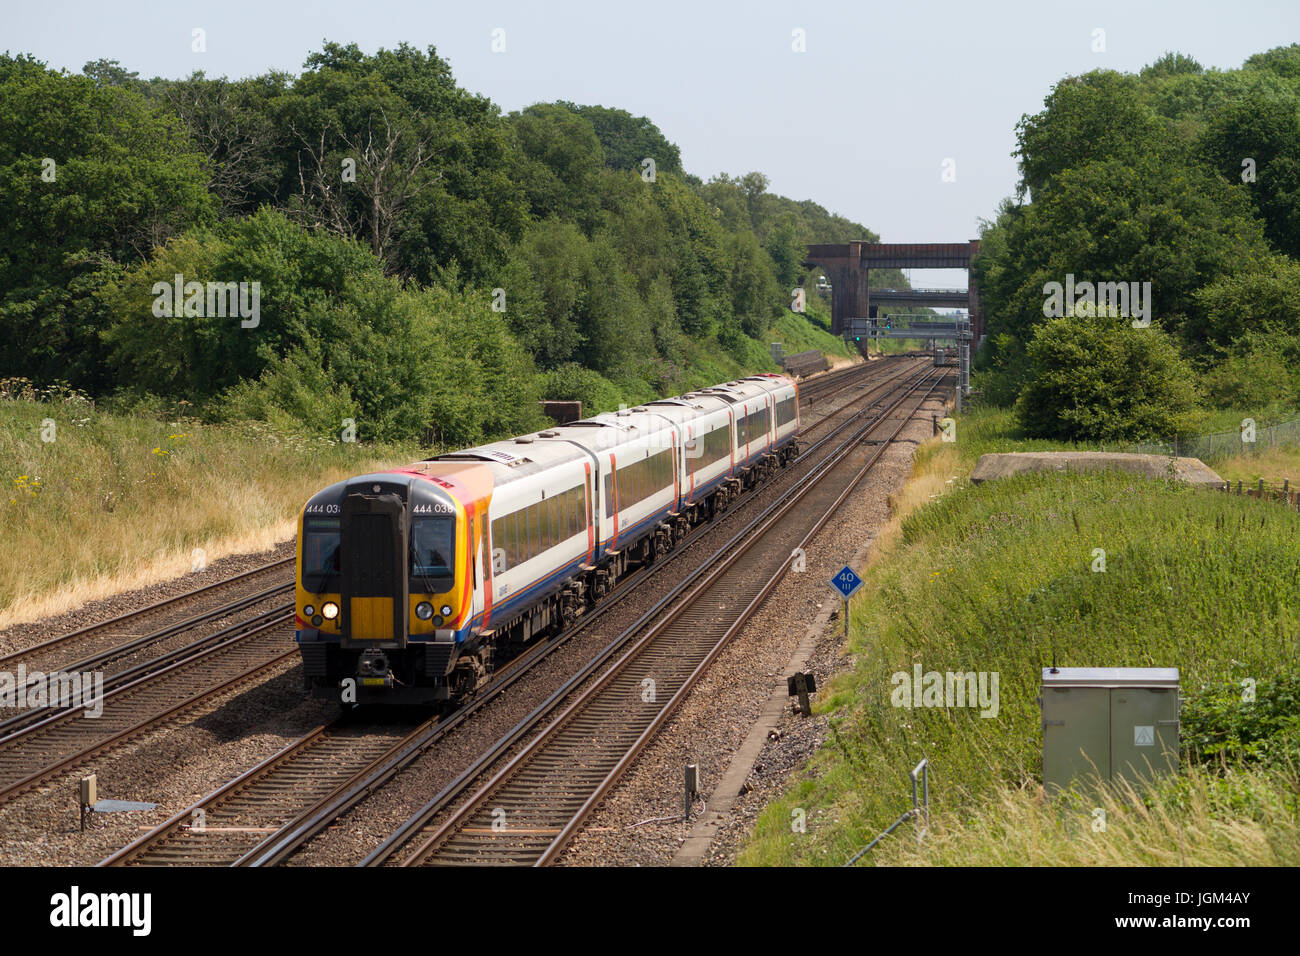 A class 444 Desiro express passenger electric multiple unit operated by South West Trains heads west at Potbridge Stock Photo